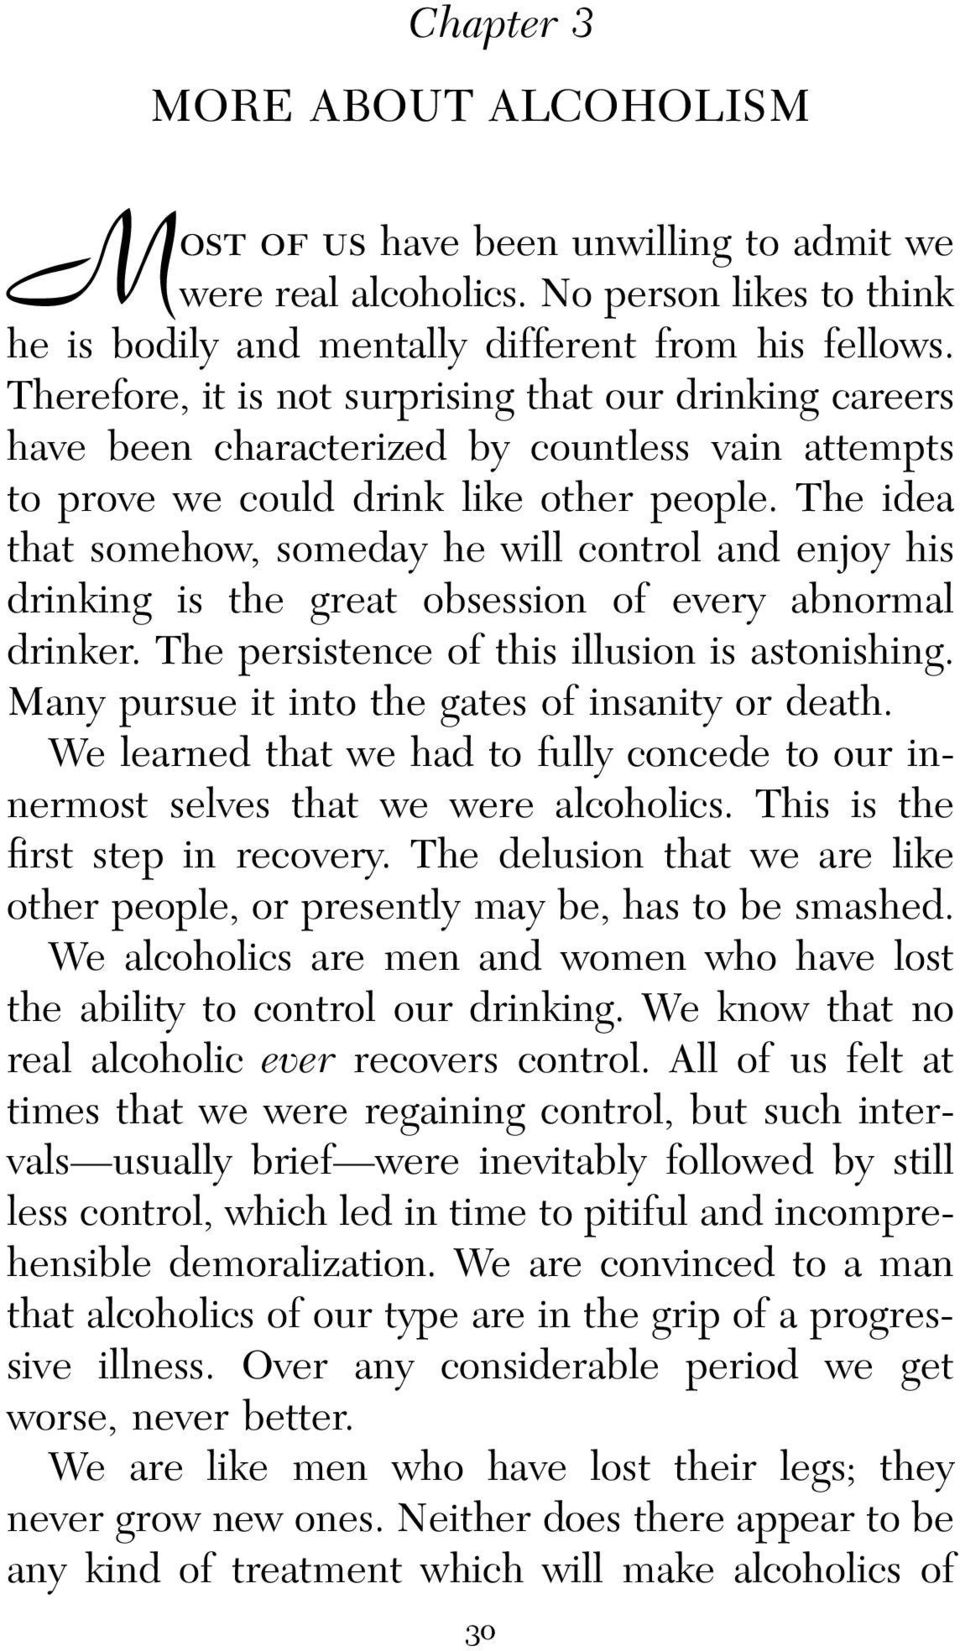 The idea that somehow, someday he will control and enjoy his drinking is the great obsession of every abnormal drinker. The persistence of this illusion is astonishing.